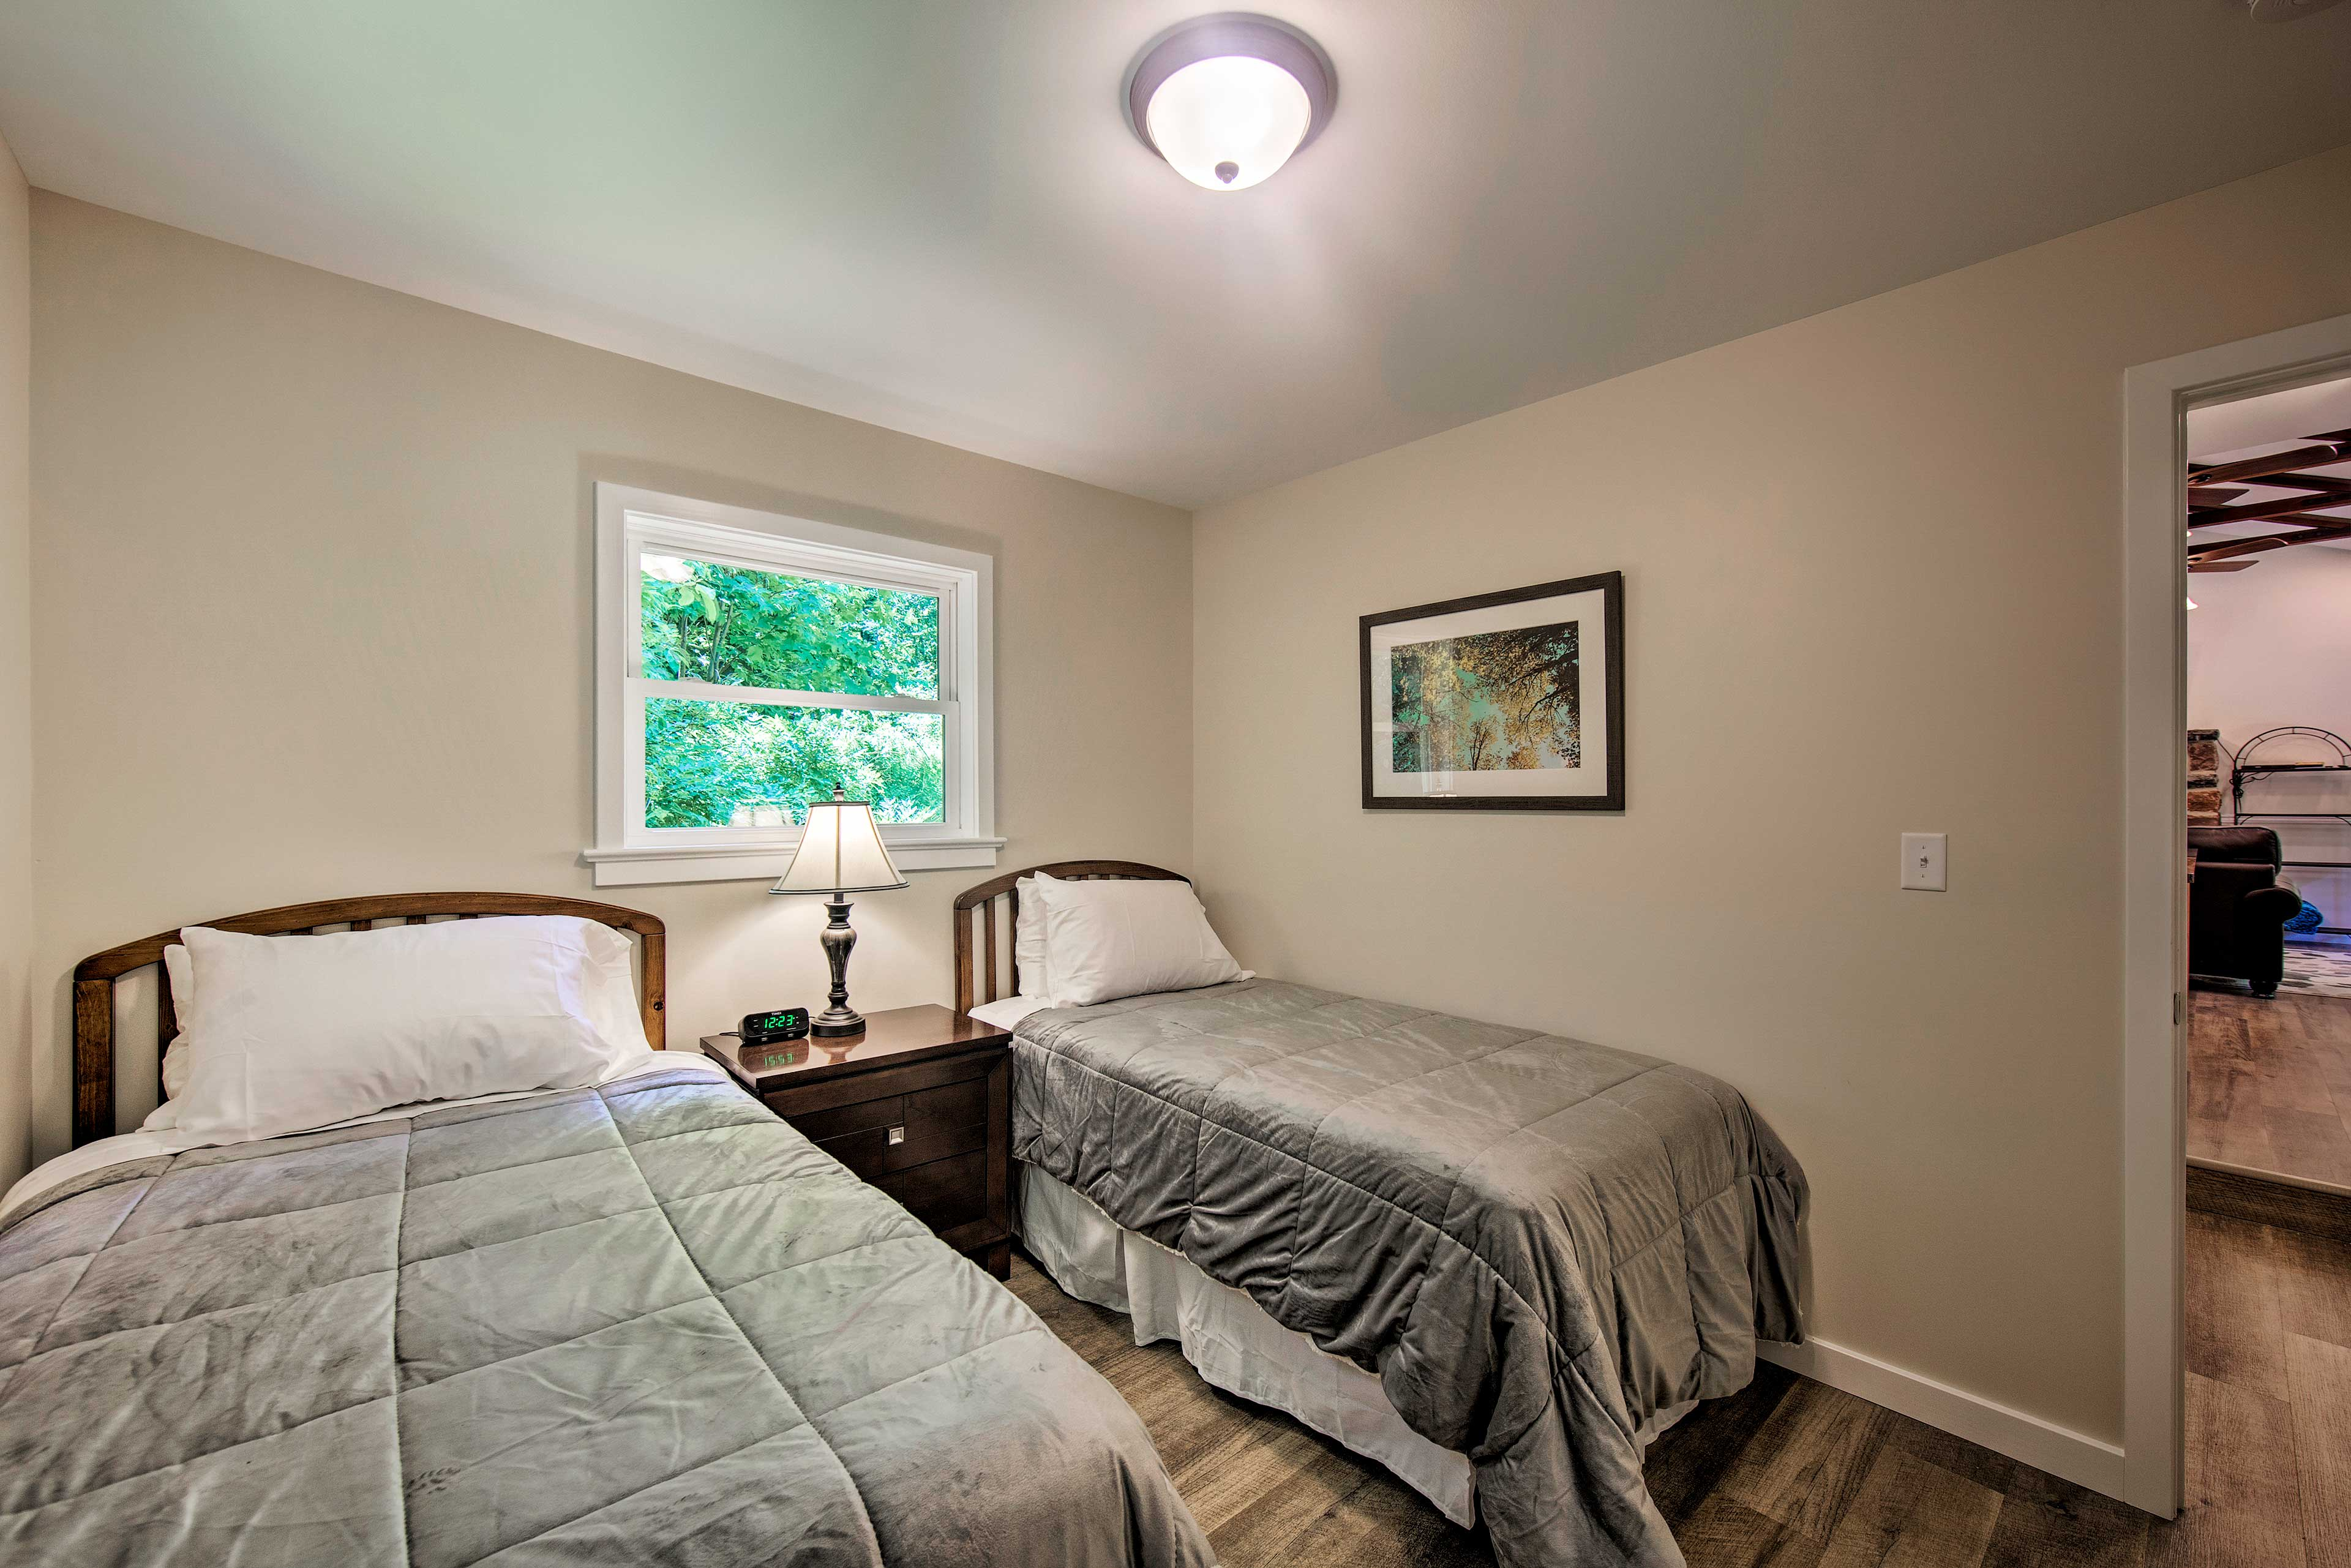 Traveling with kids? Let them stay in the third bedroom!